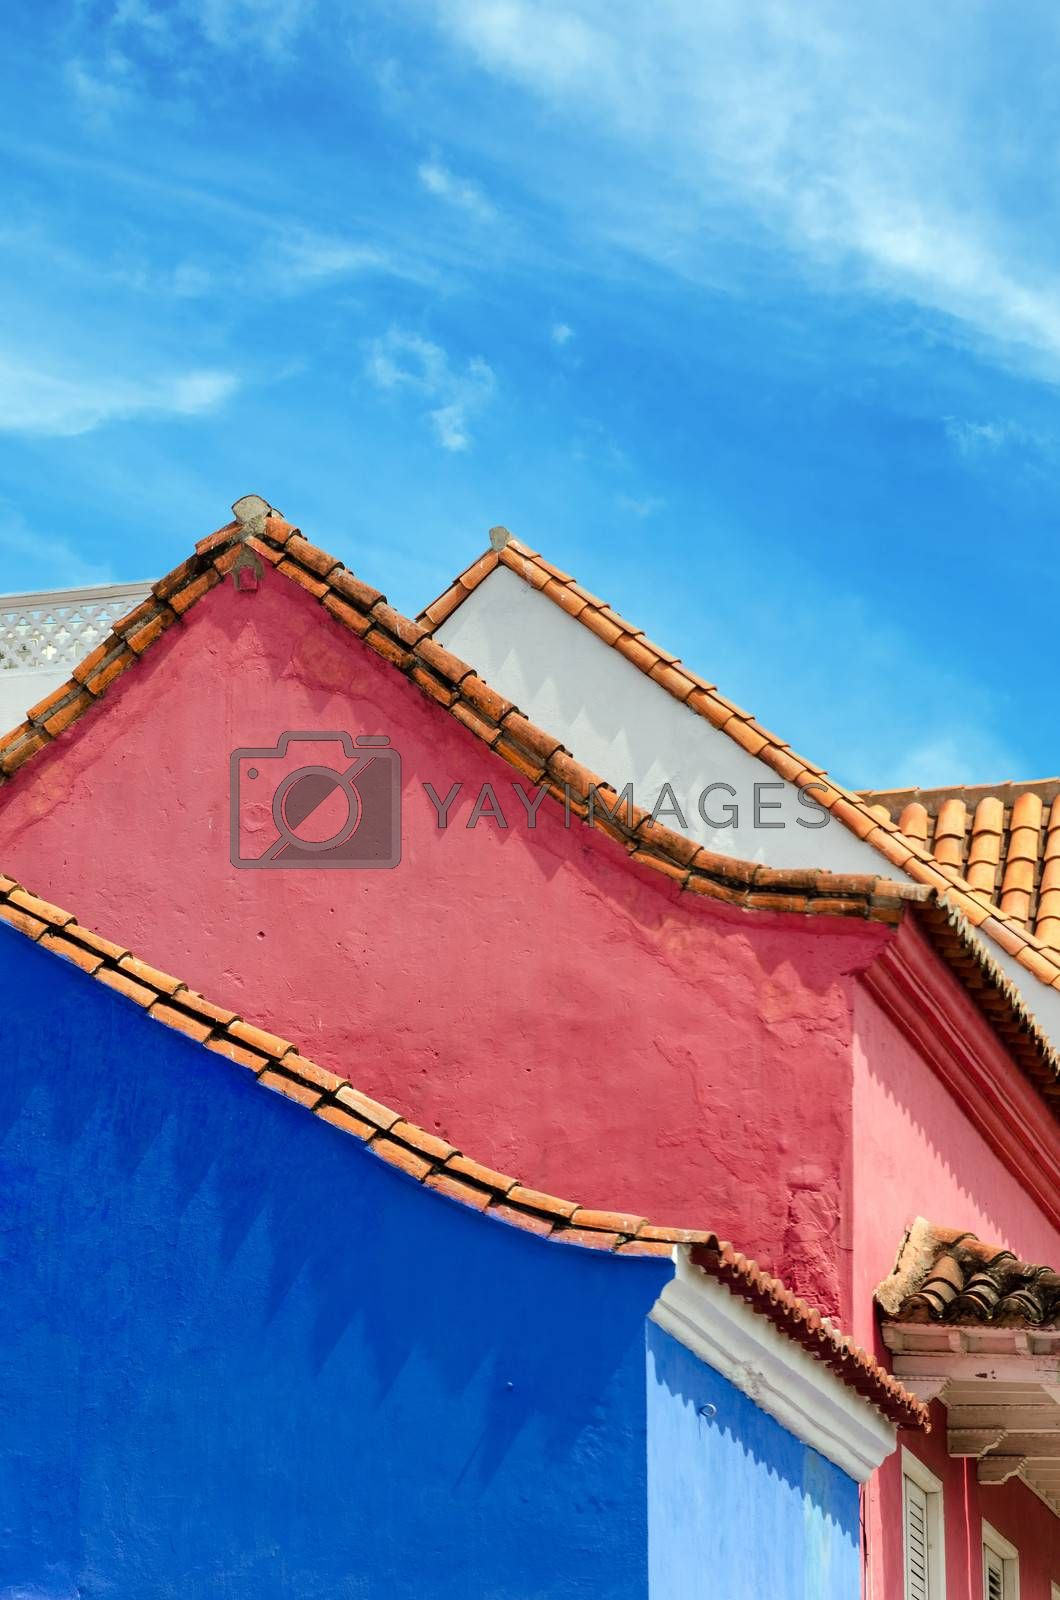 Blue, pink, and white colonial buildings in the old town of Cartagena, Colombia